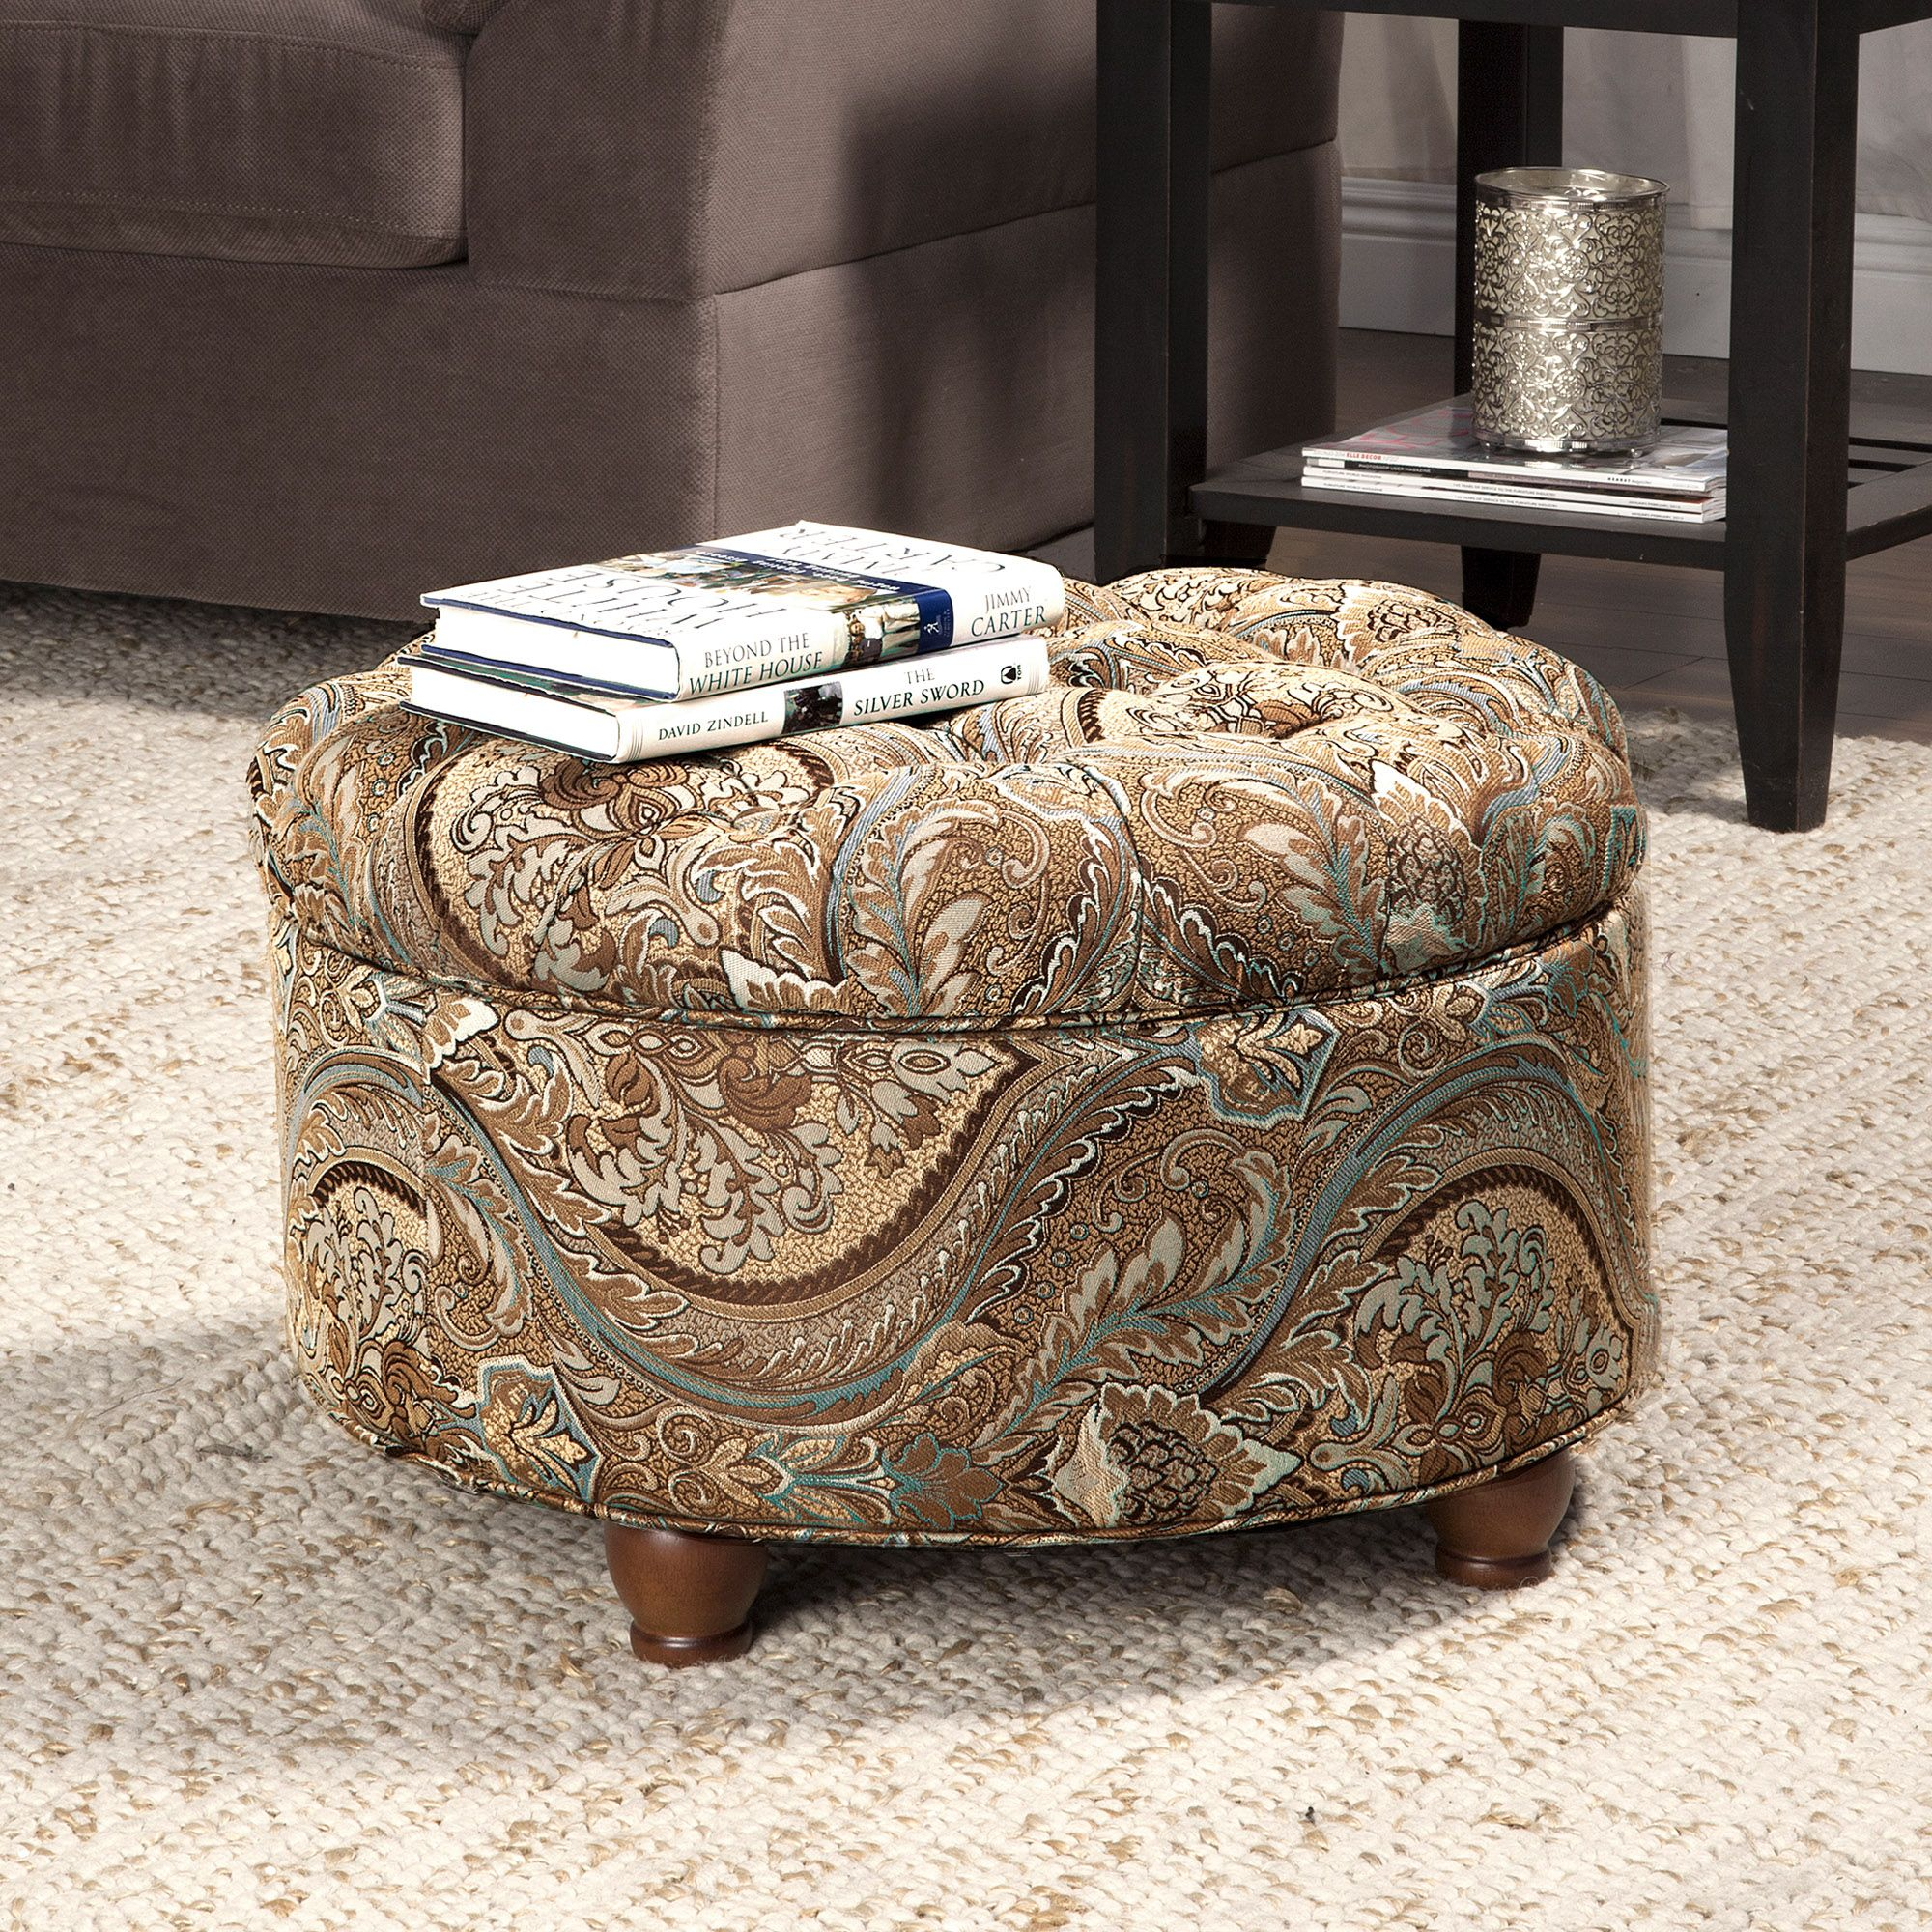 Pleasing Button Tufted Round Storage Ottoman Brown And Tel Paisley Theyellowbook Wood Chair Design Ideas Theyellowbookinfo